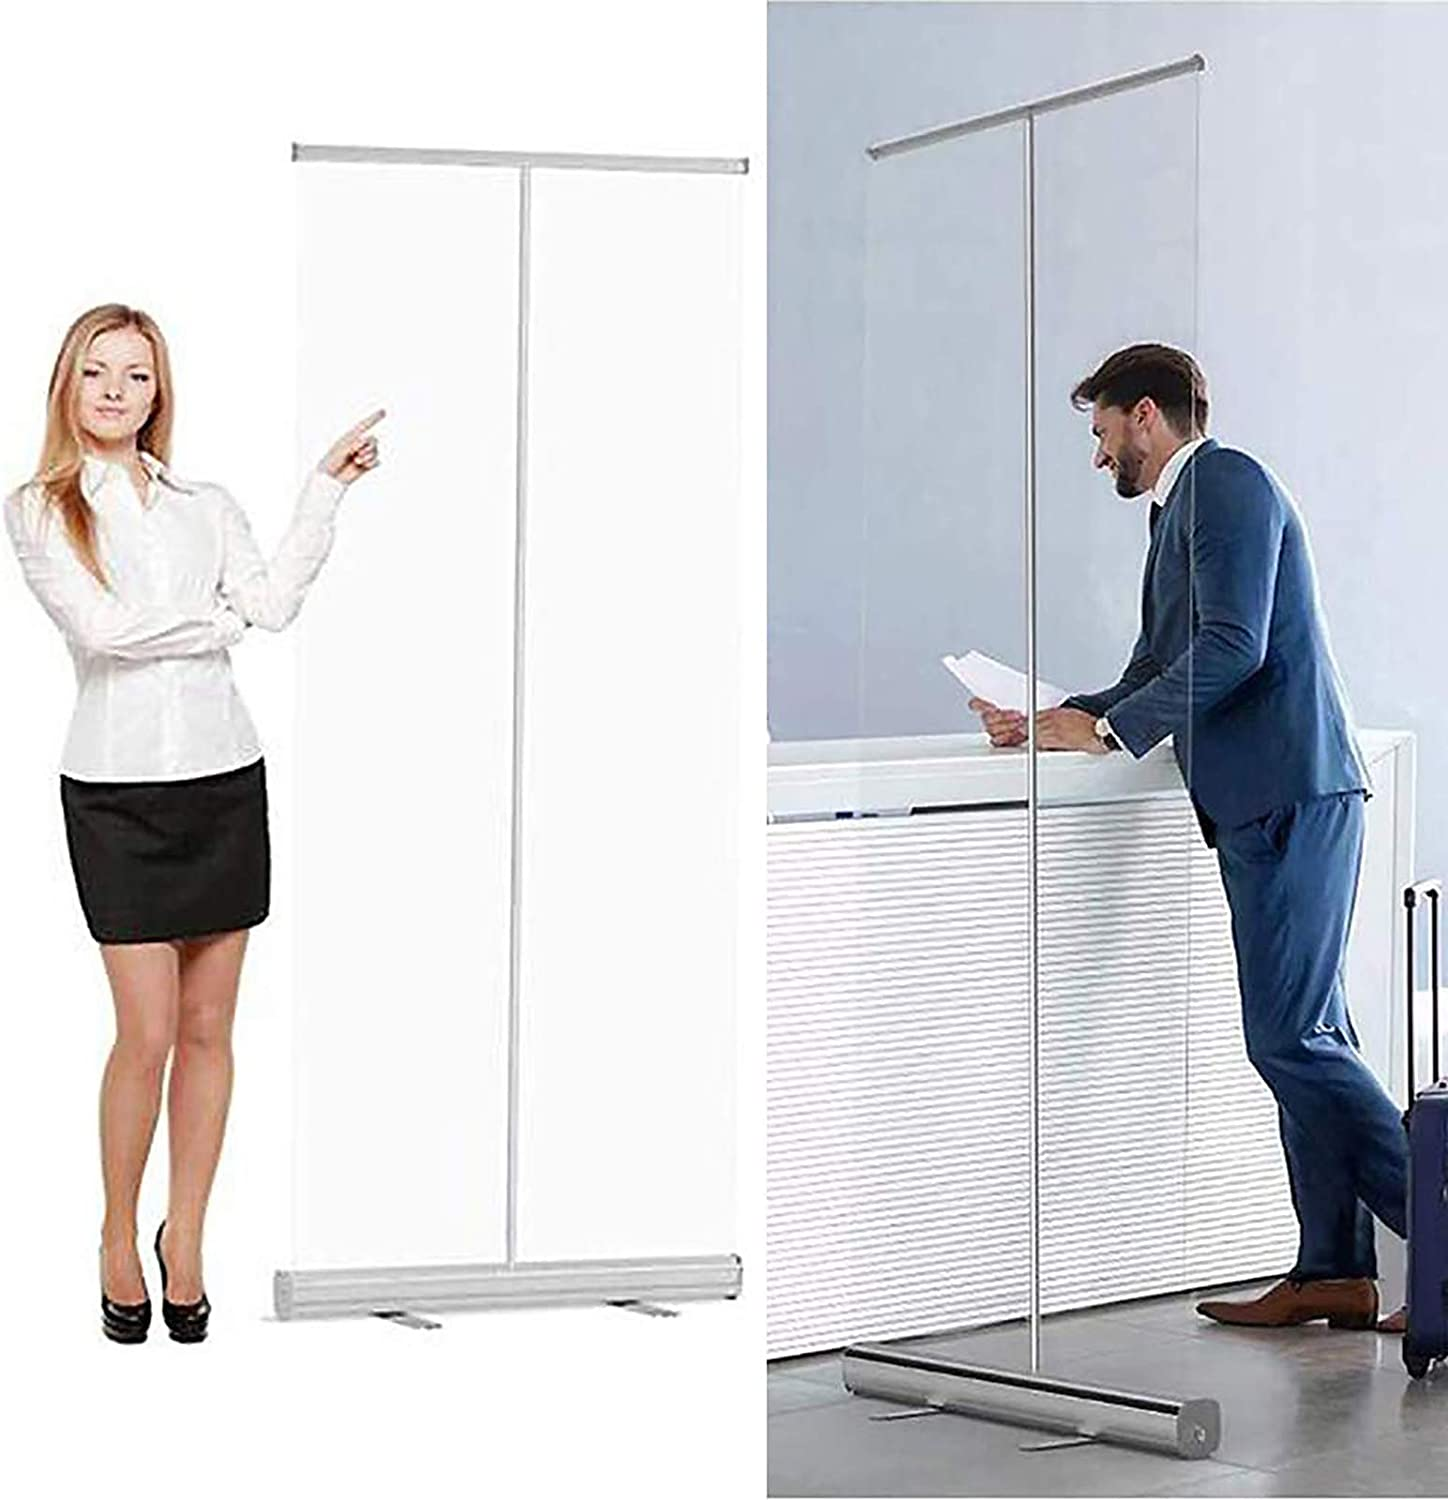 Social Distancing Screen Transparent Partition Screen Quick and Easy Assembly Spit Protection HHXX Roller Pull Up Clear Banner Floor-Standing Sneeze Guard Protection Screen room dividers